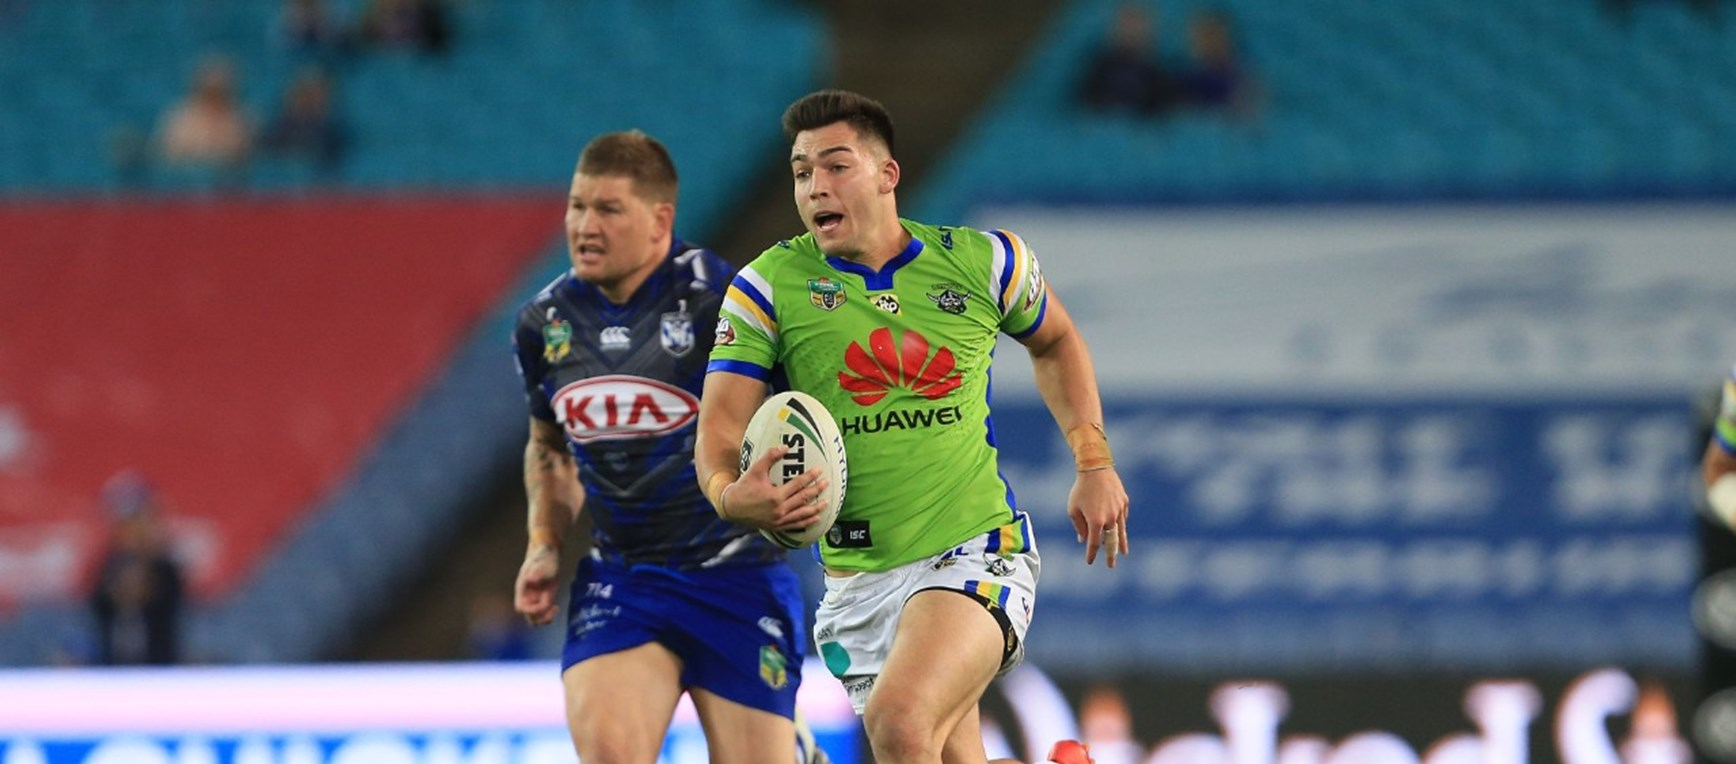 Gallery: Raiders v Bulldogs